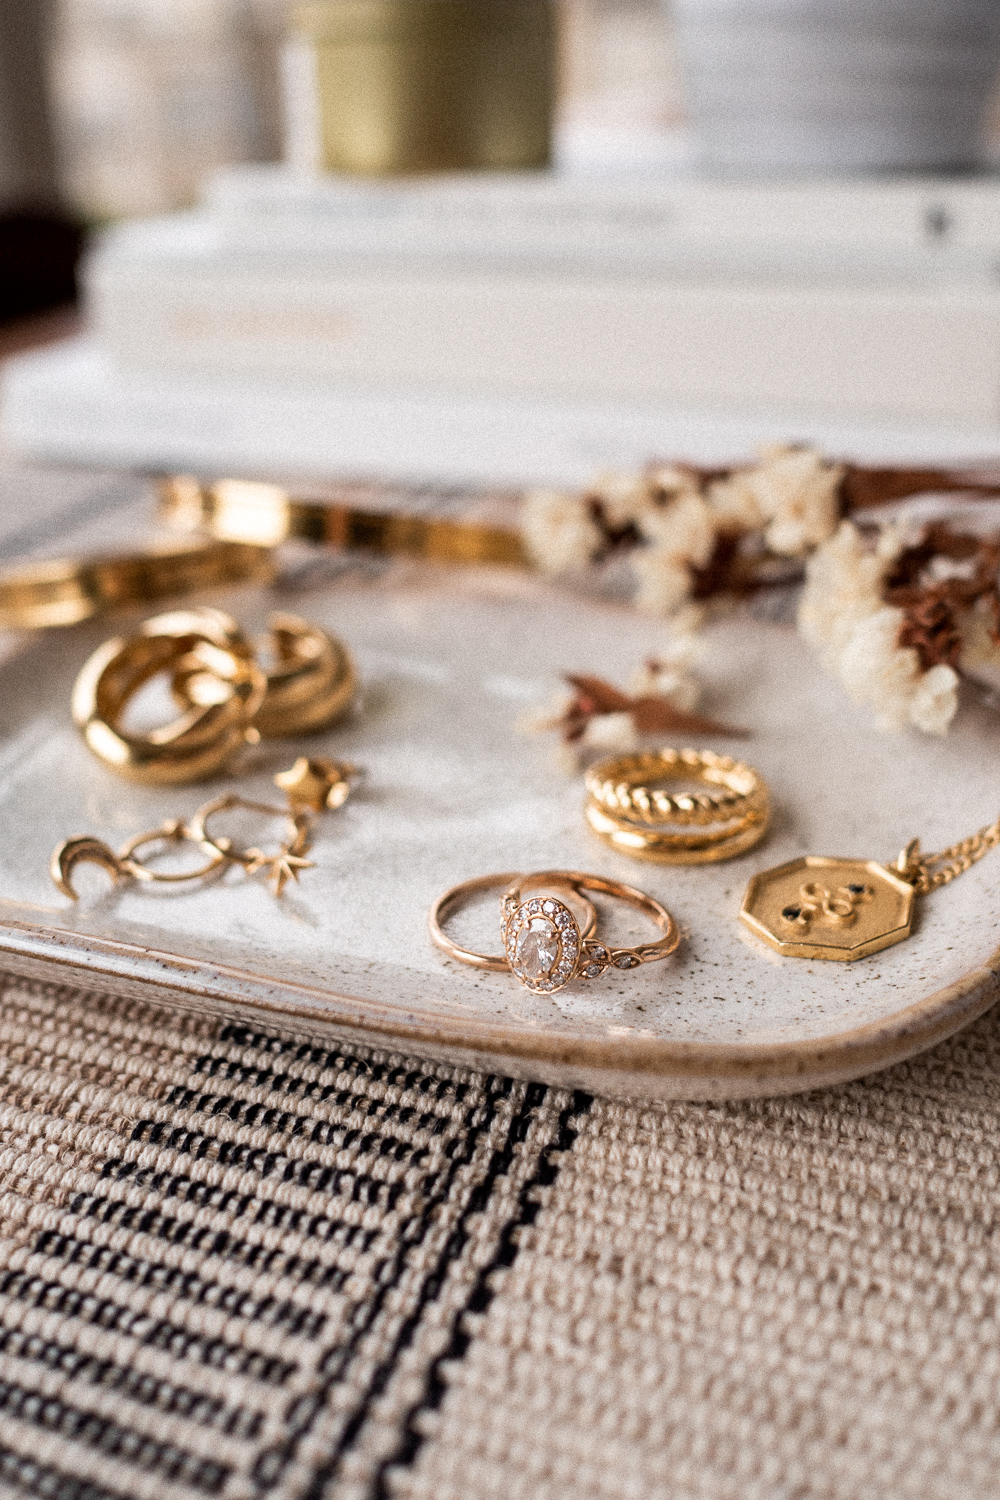 A closeup of gold and rose gold rings on a tray in my capsule jewelry collection